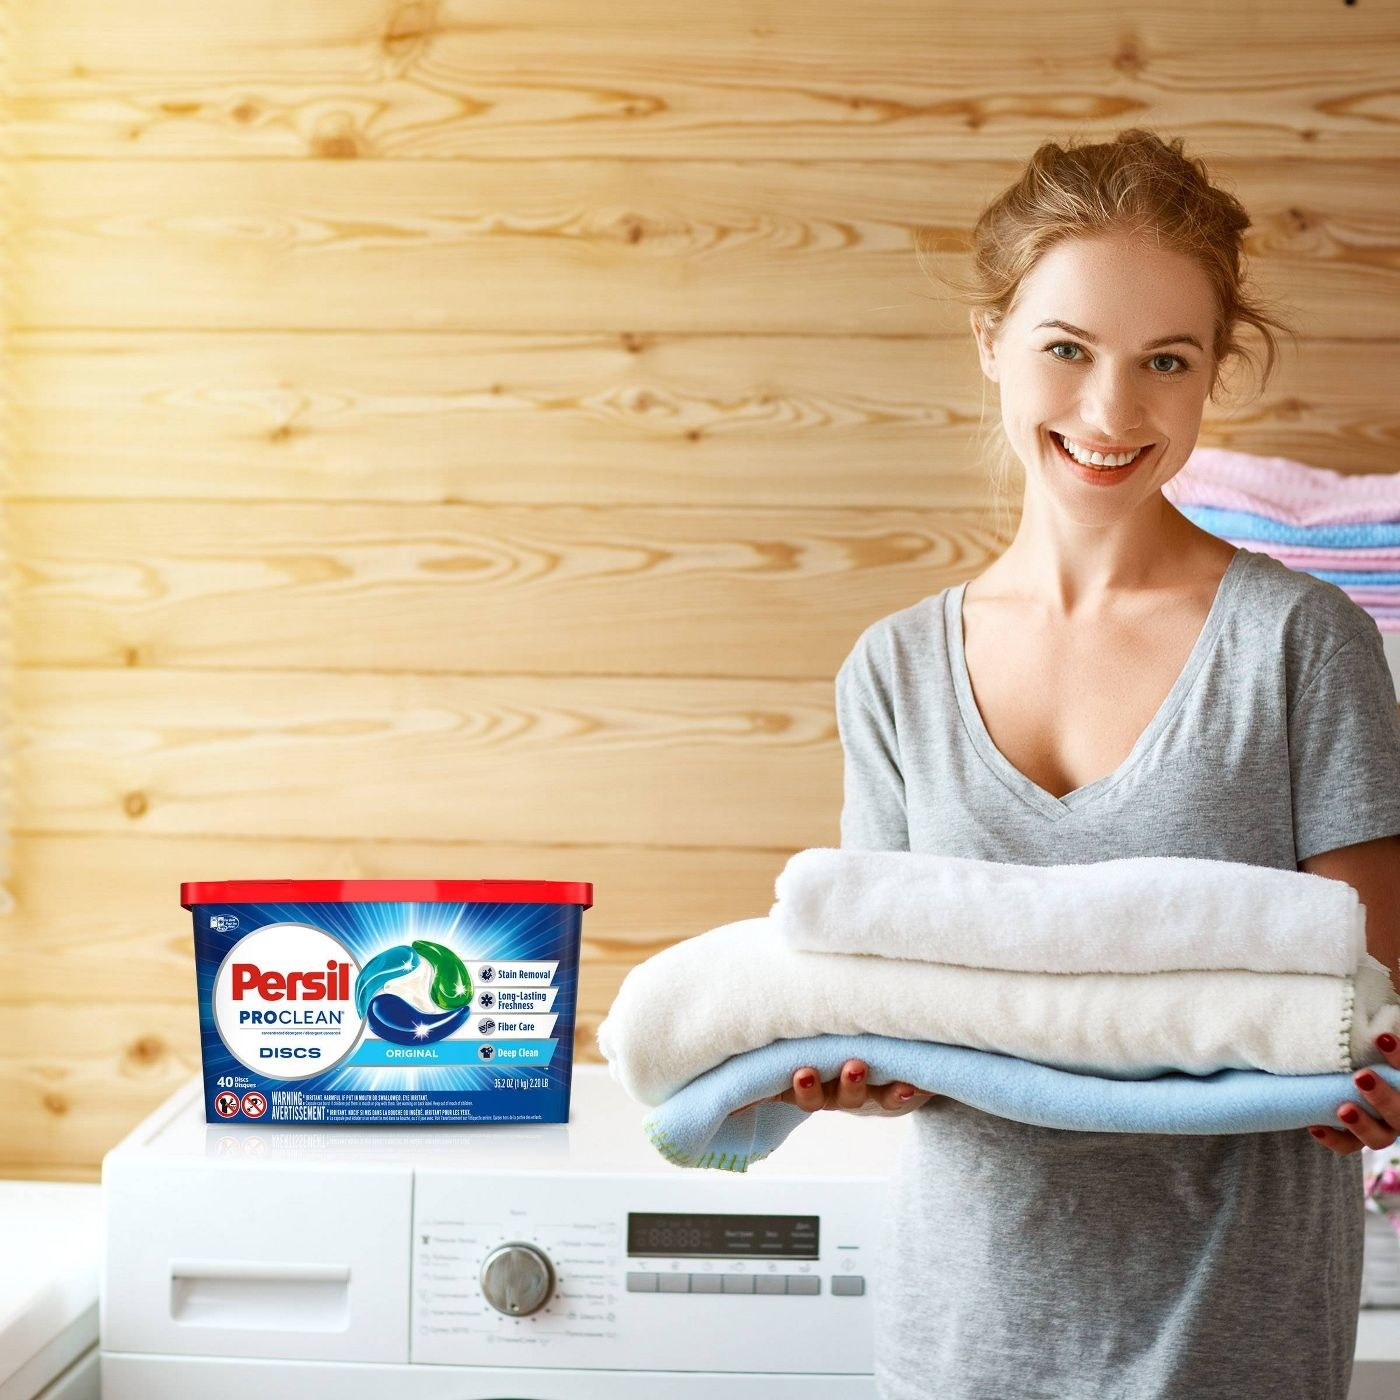 Model with laundry detergent packs